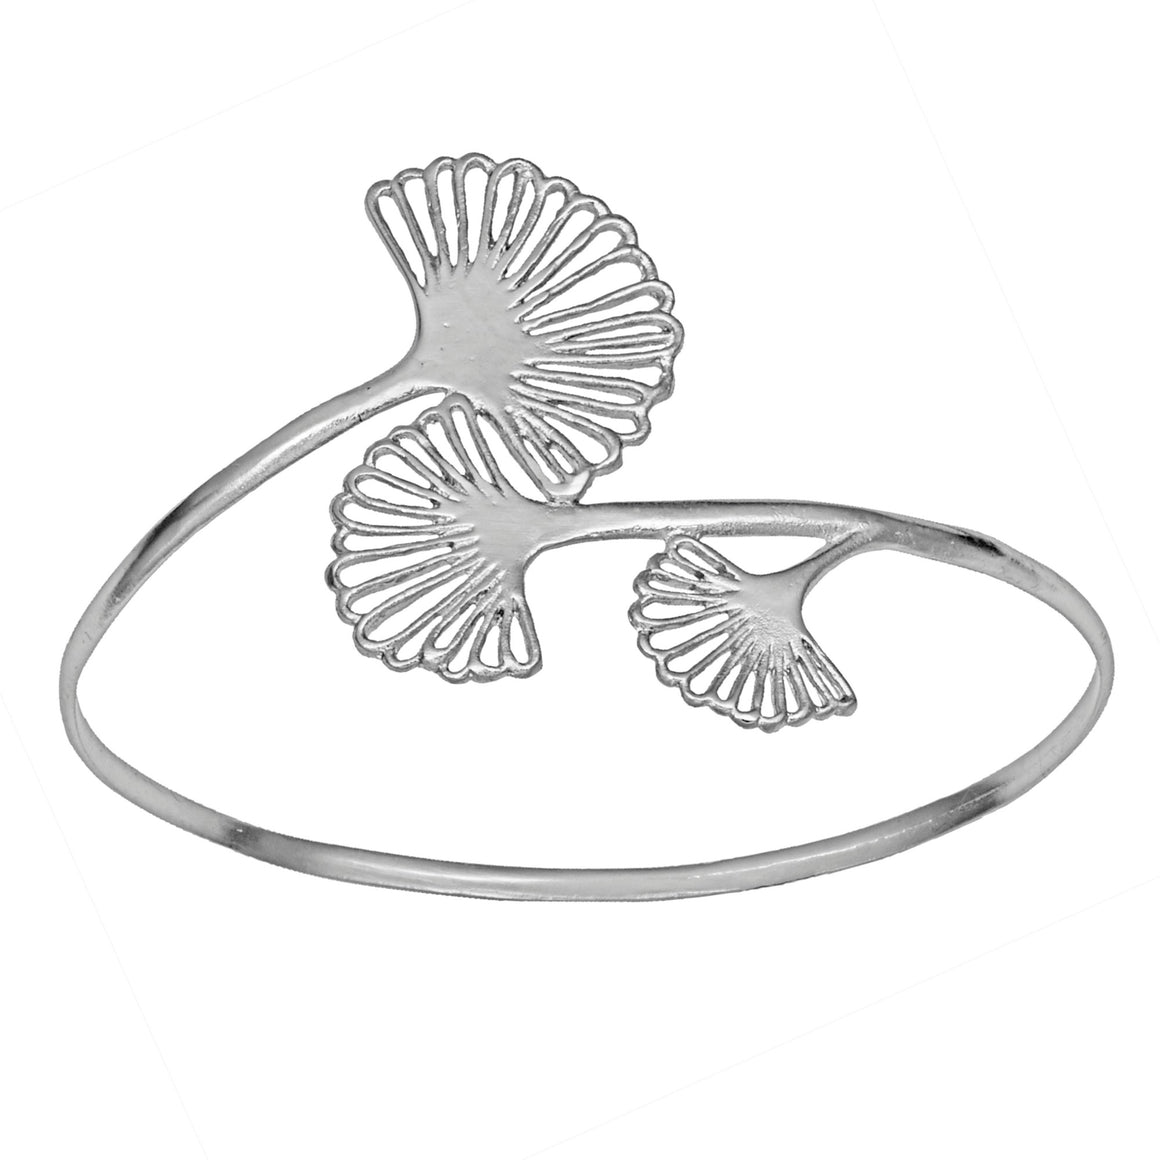 Ginkgo Triple Leaf Bangle Bracelet - Platinum Silver